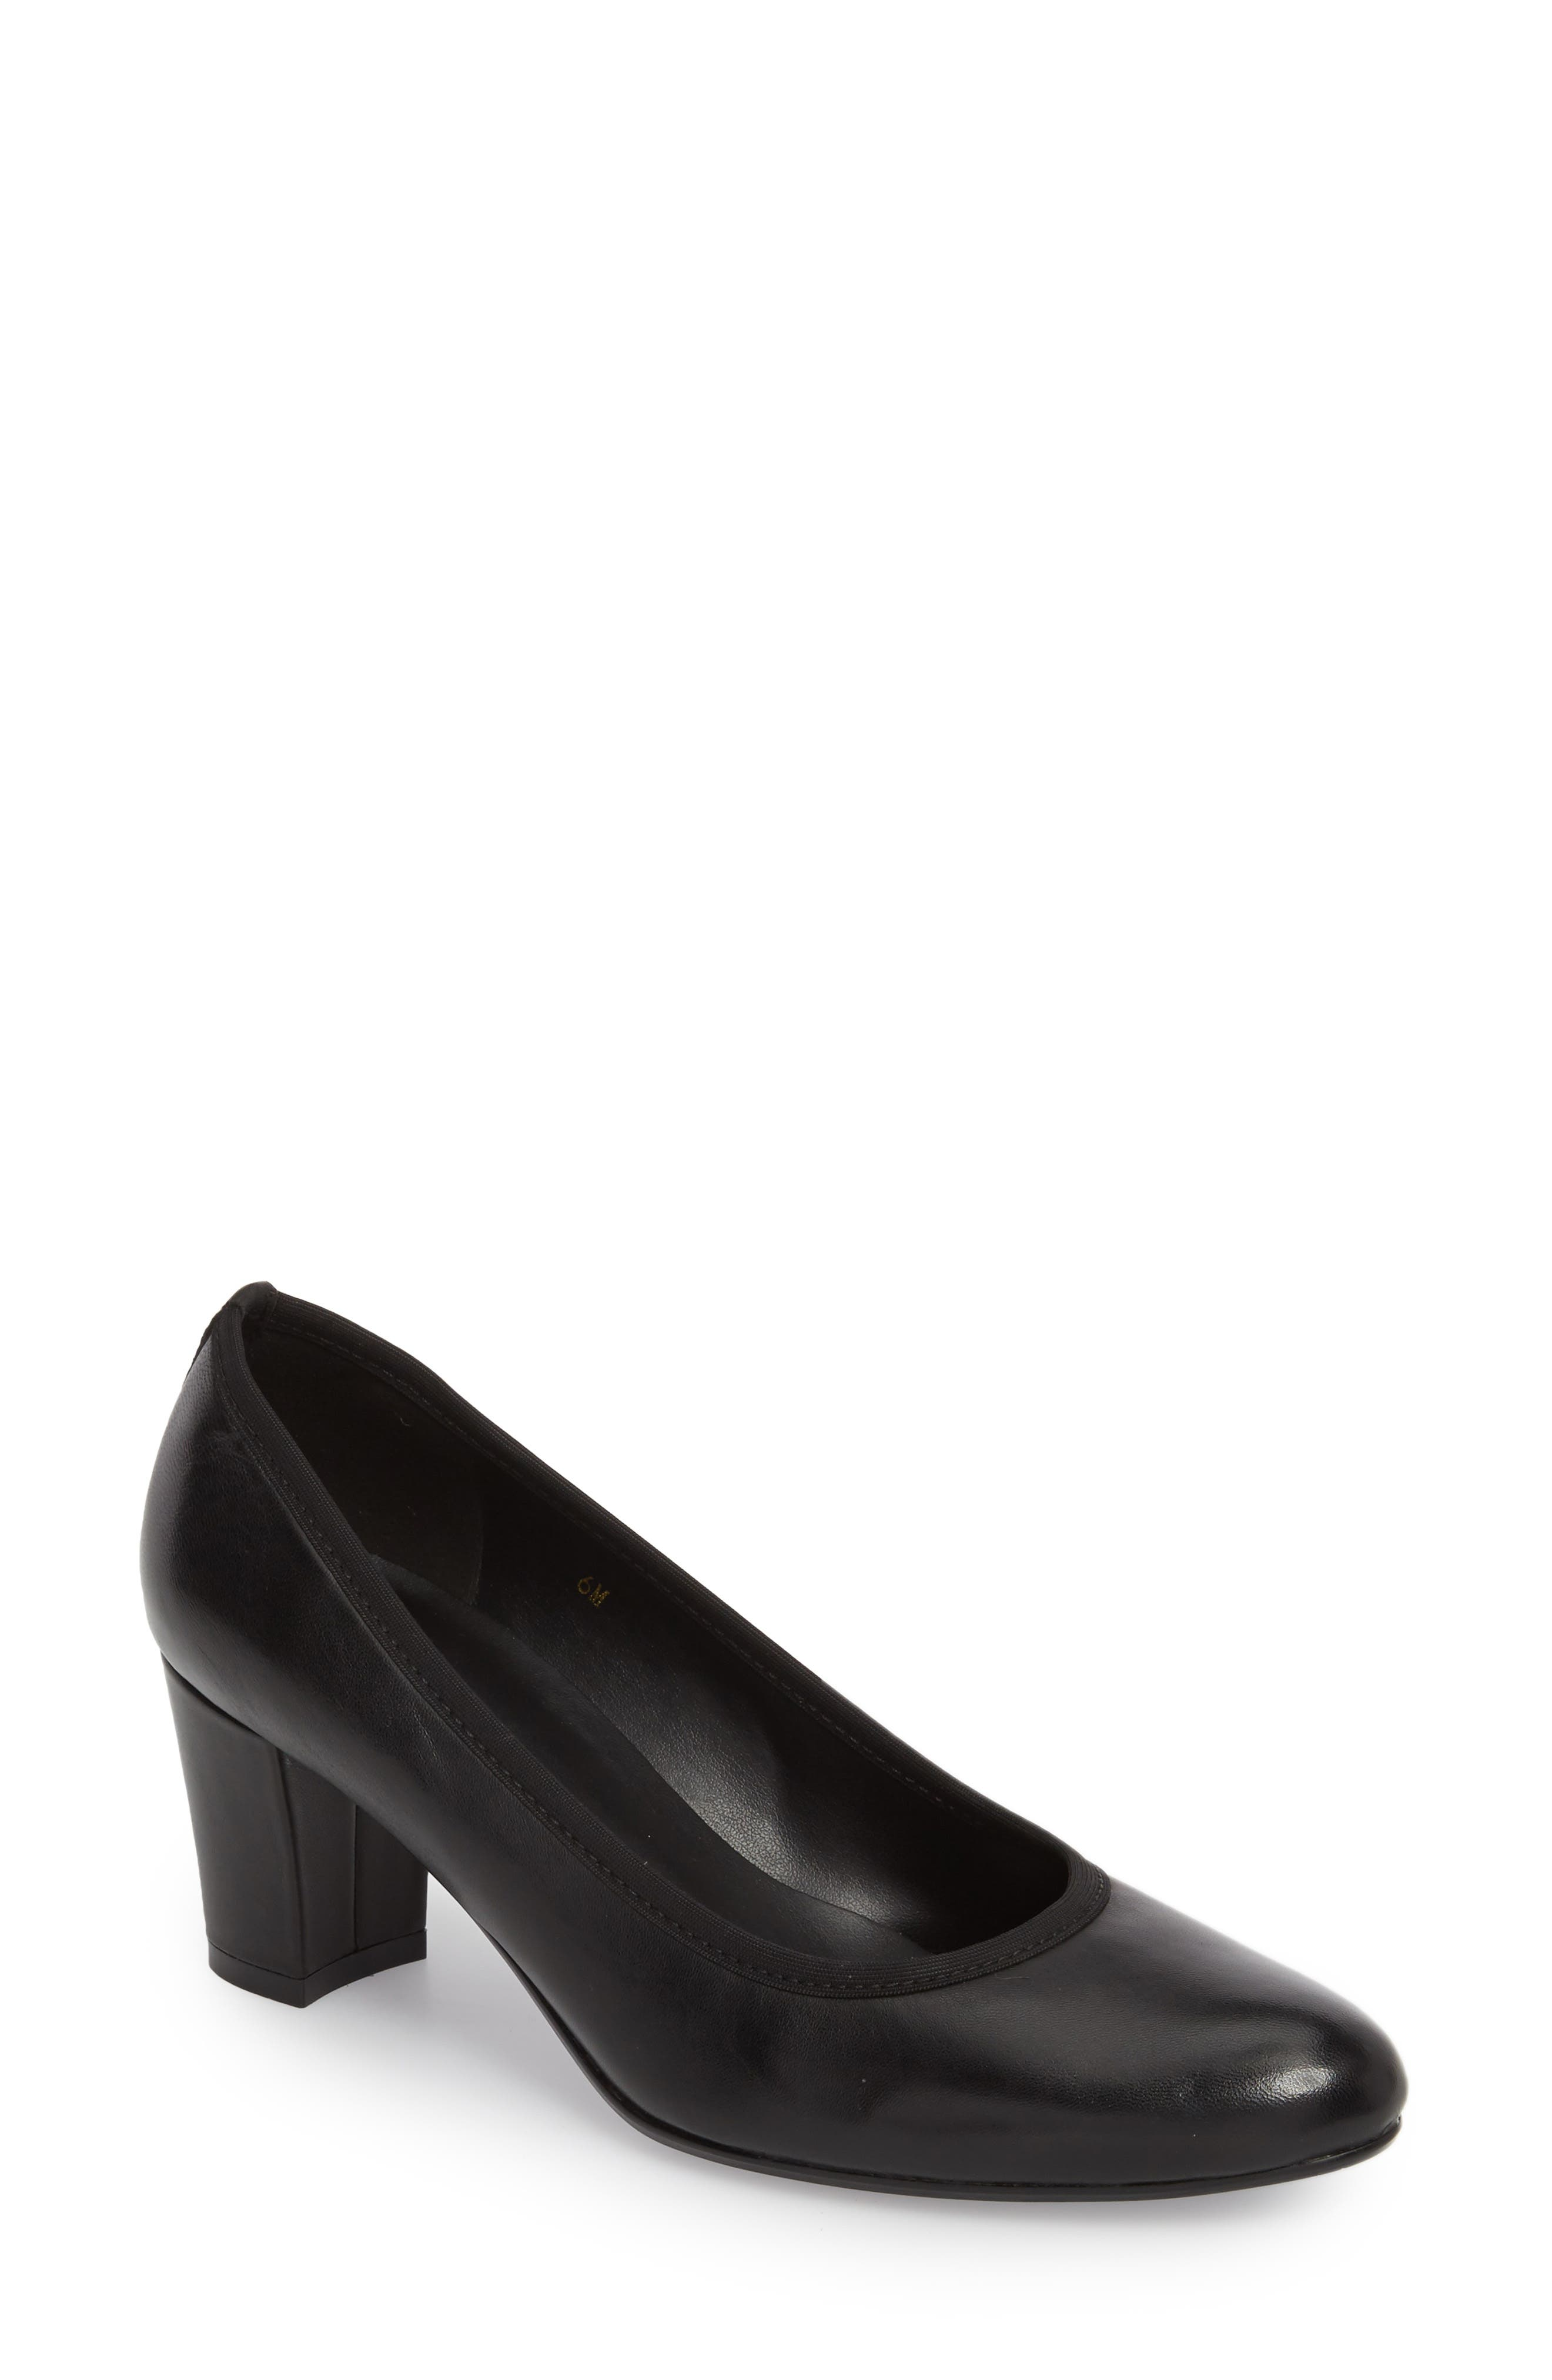 Dacy Pump,                             Main thumbnail 1, color,                             BLACK LEATHER